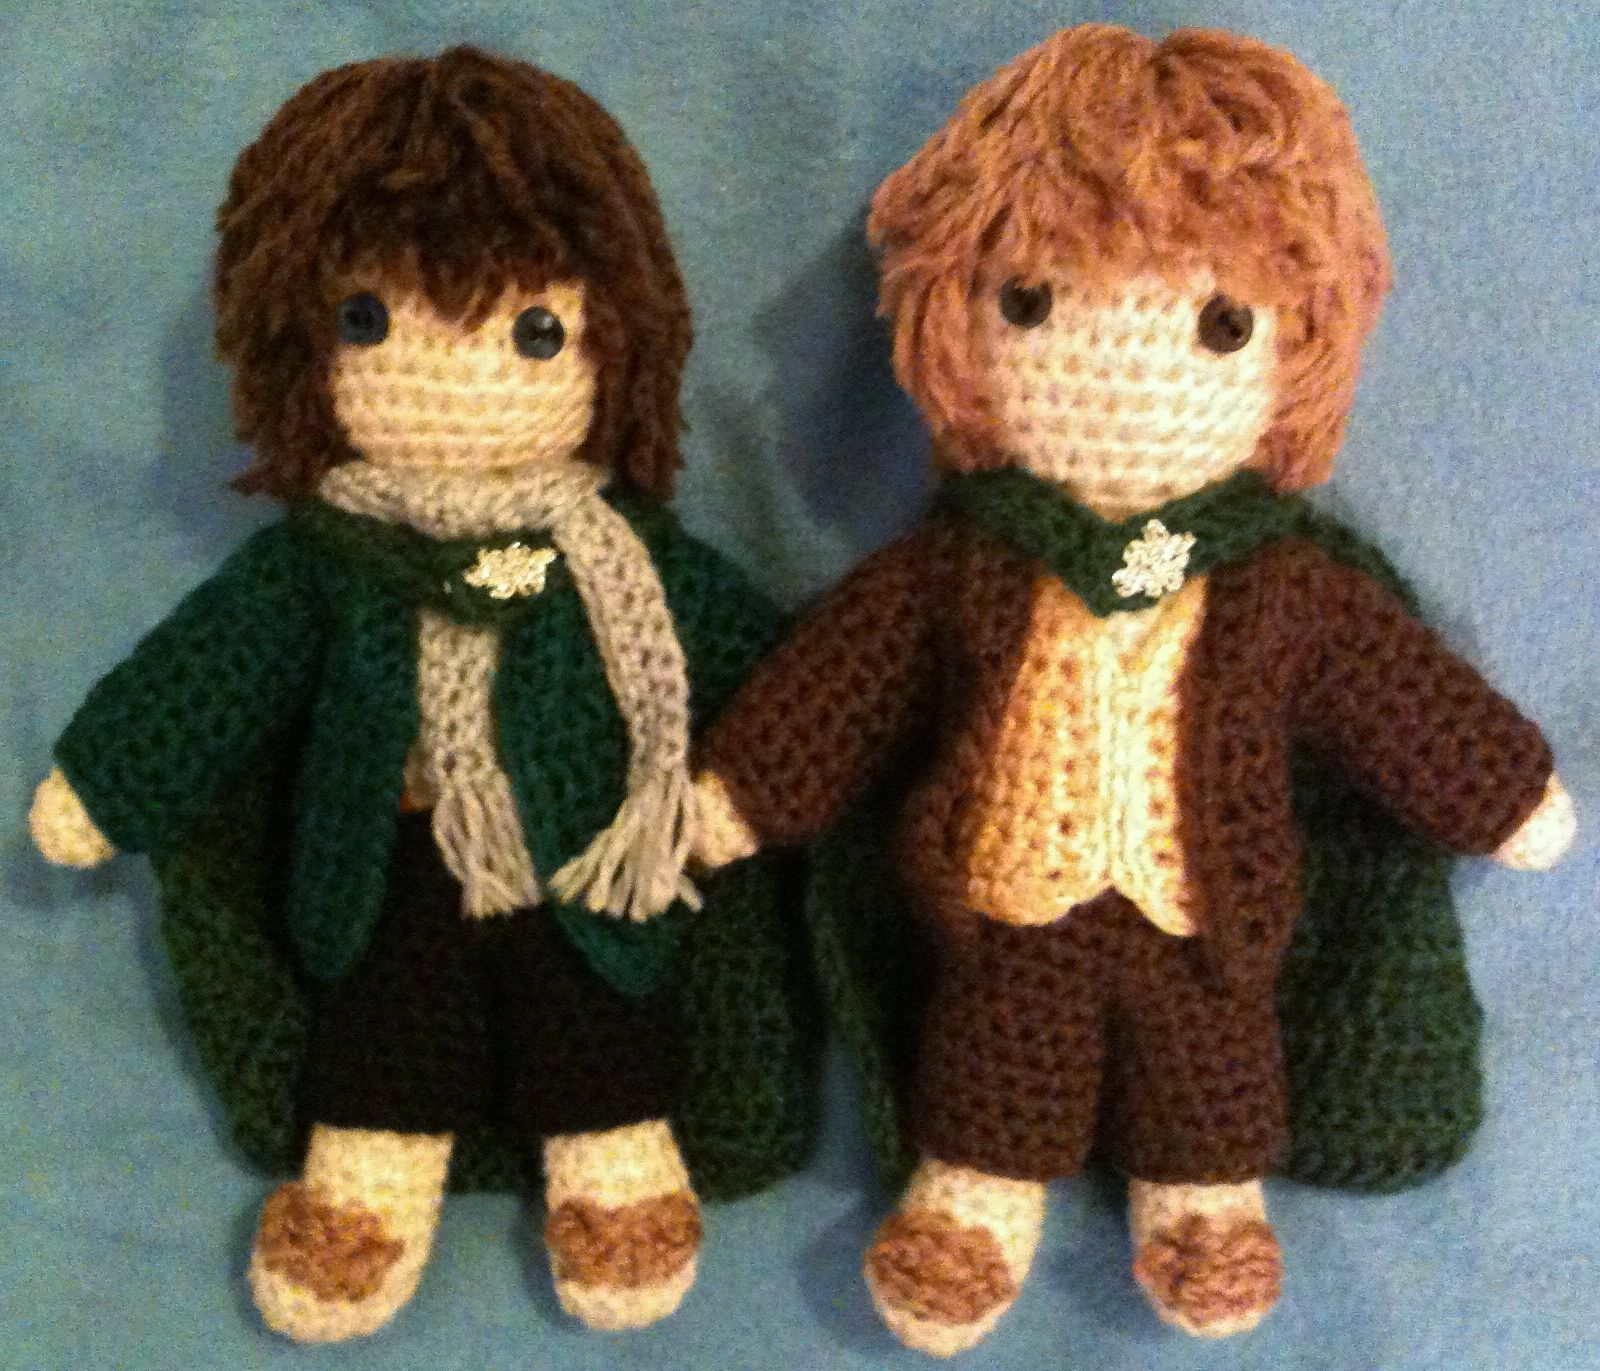 Amigurumi Magische Ring : Hobbit amigurumi! From Lord of the Rings, Pippin and Merry ...